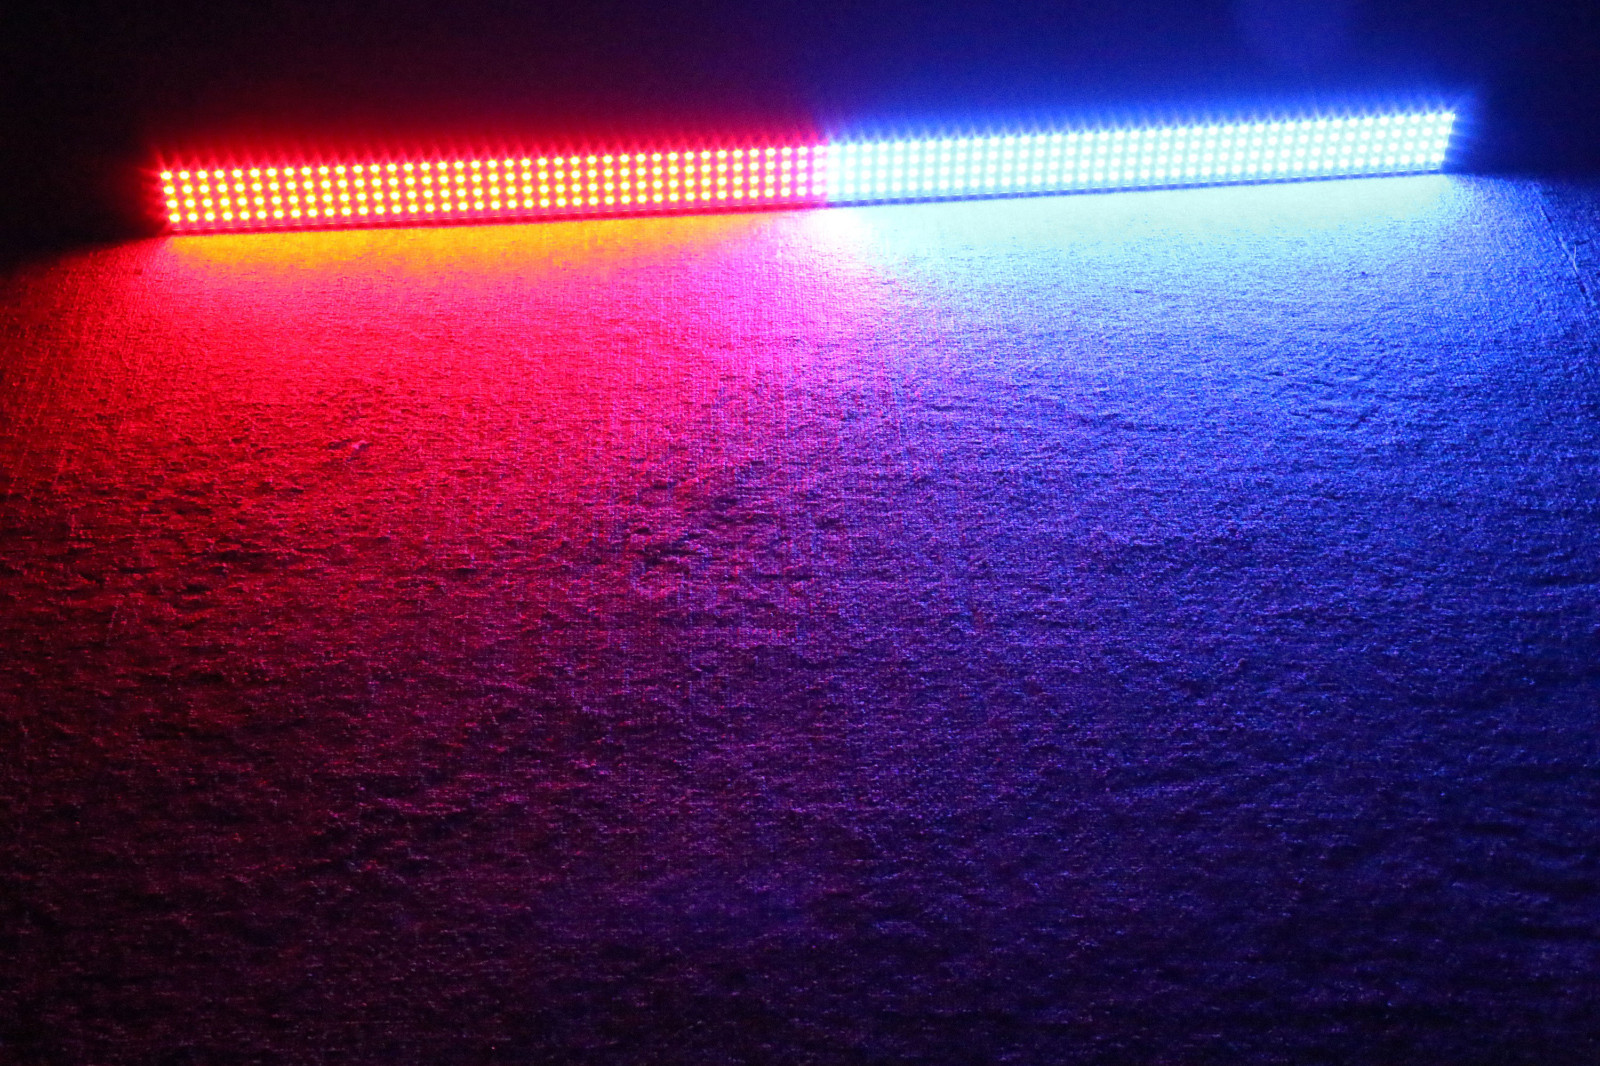 Marslite pixel led wash light bar to decorative for party-6